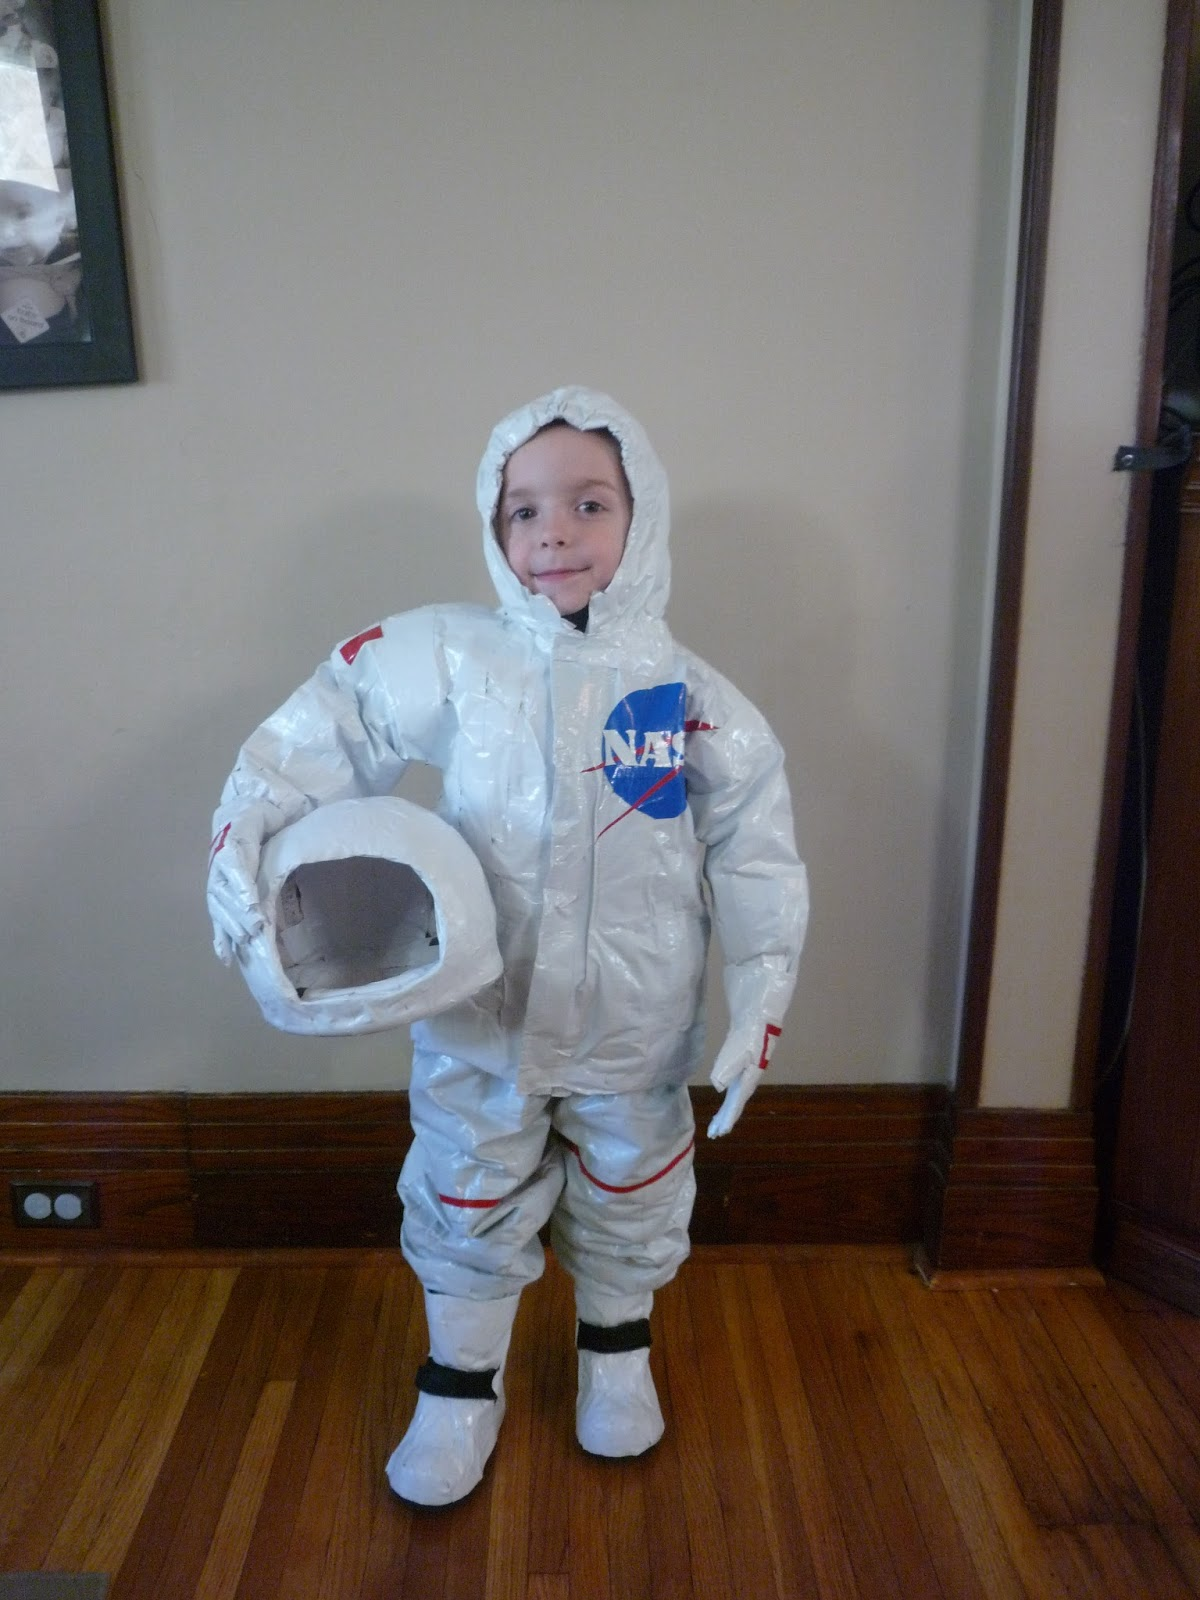 Full Time Frugal Diy Childs Costume 13 Astronaut